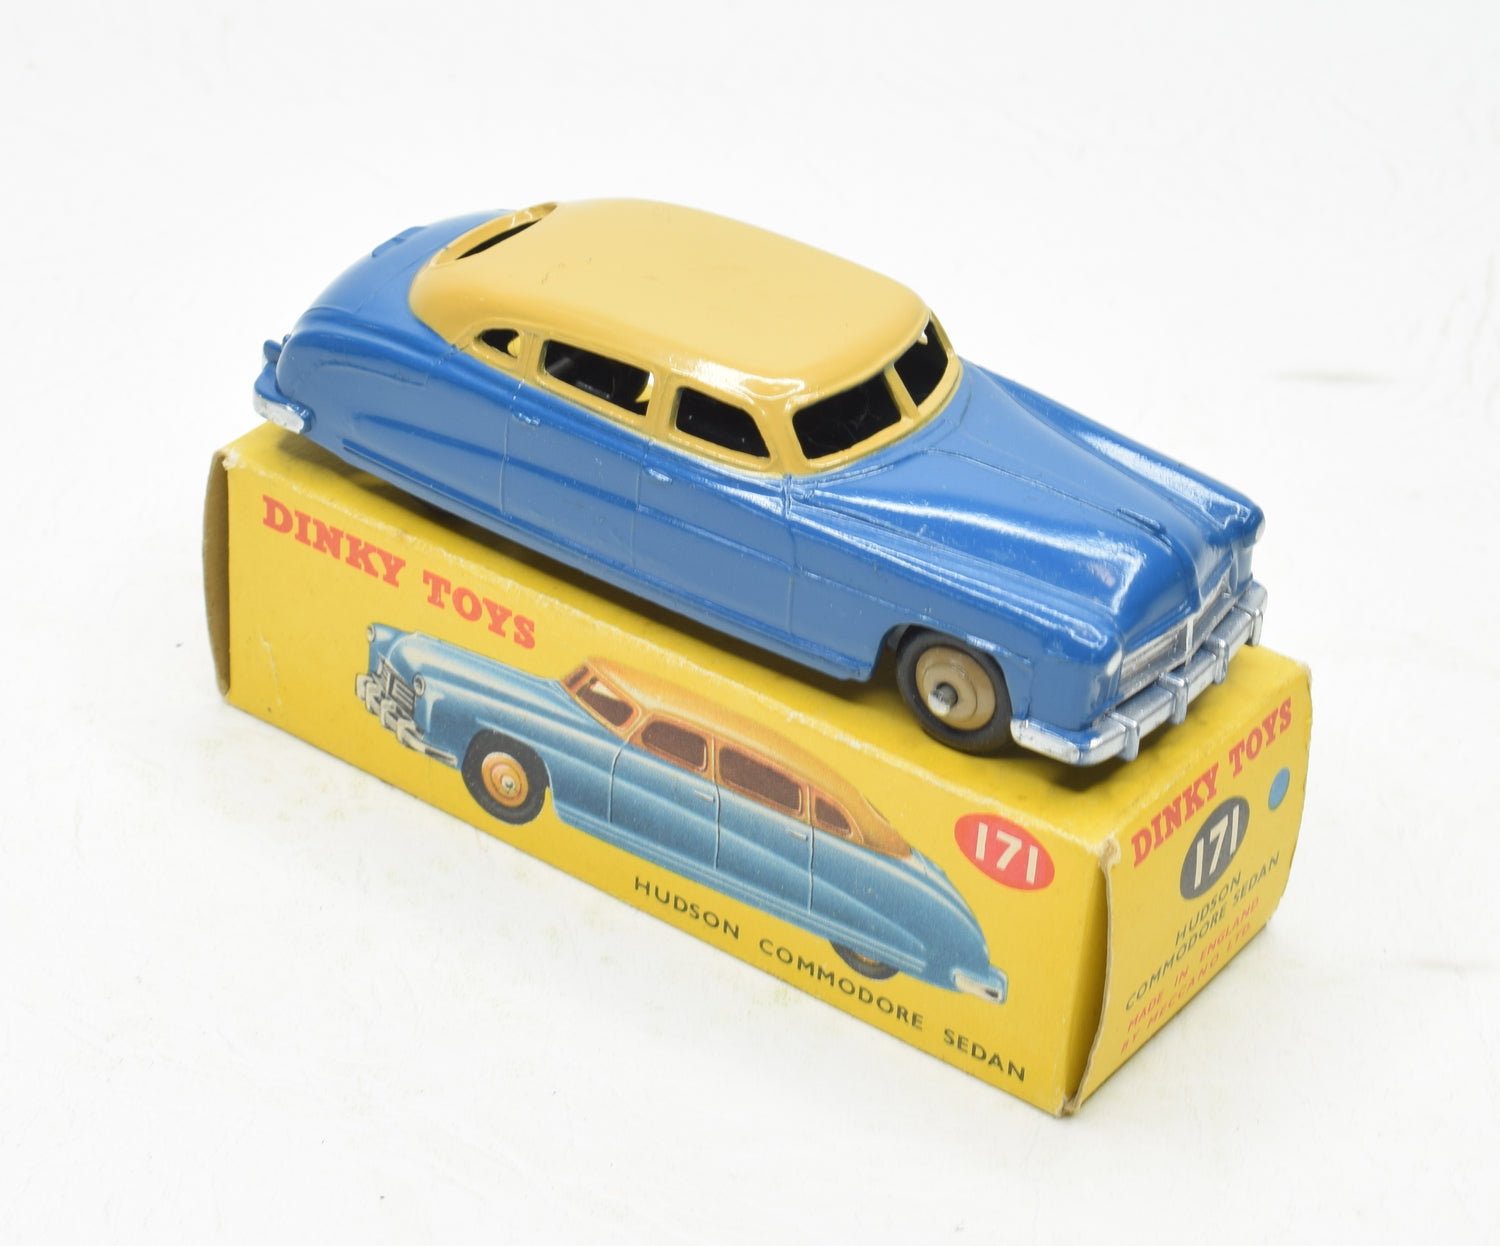 Dinky toys 171 Hudson Commodore Very Near Mint/Boxed